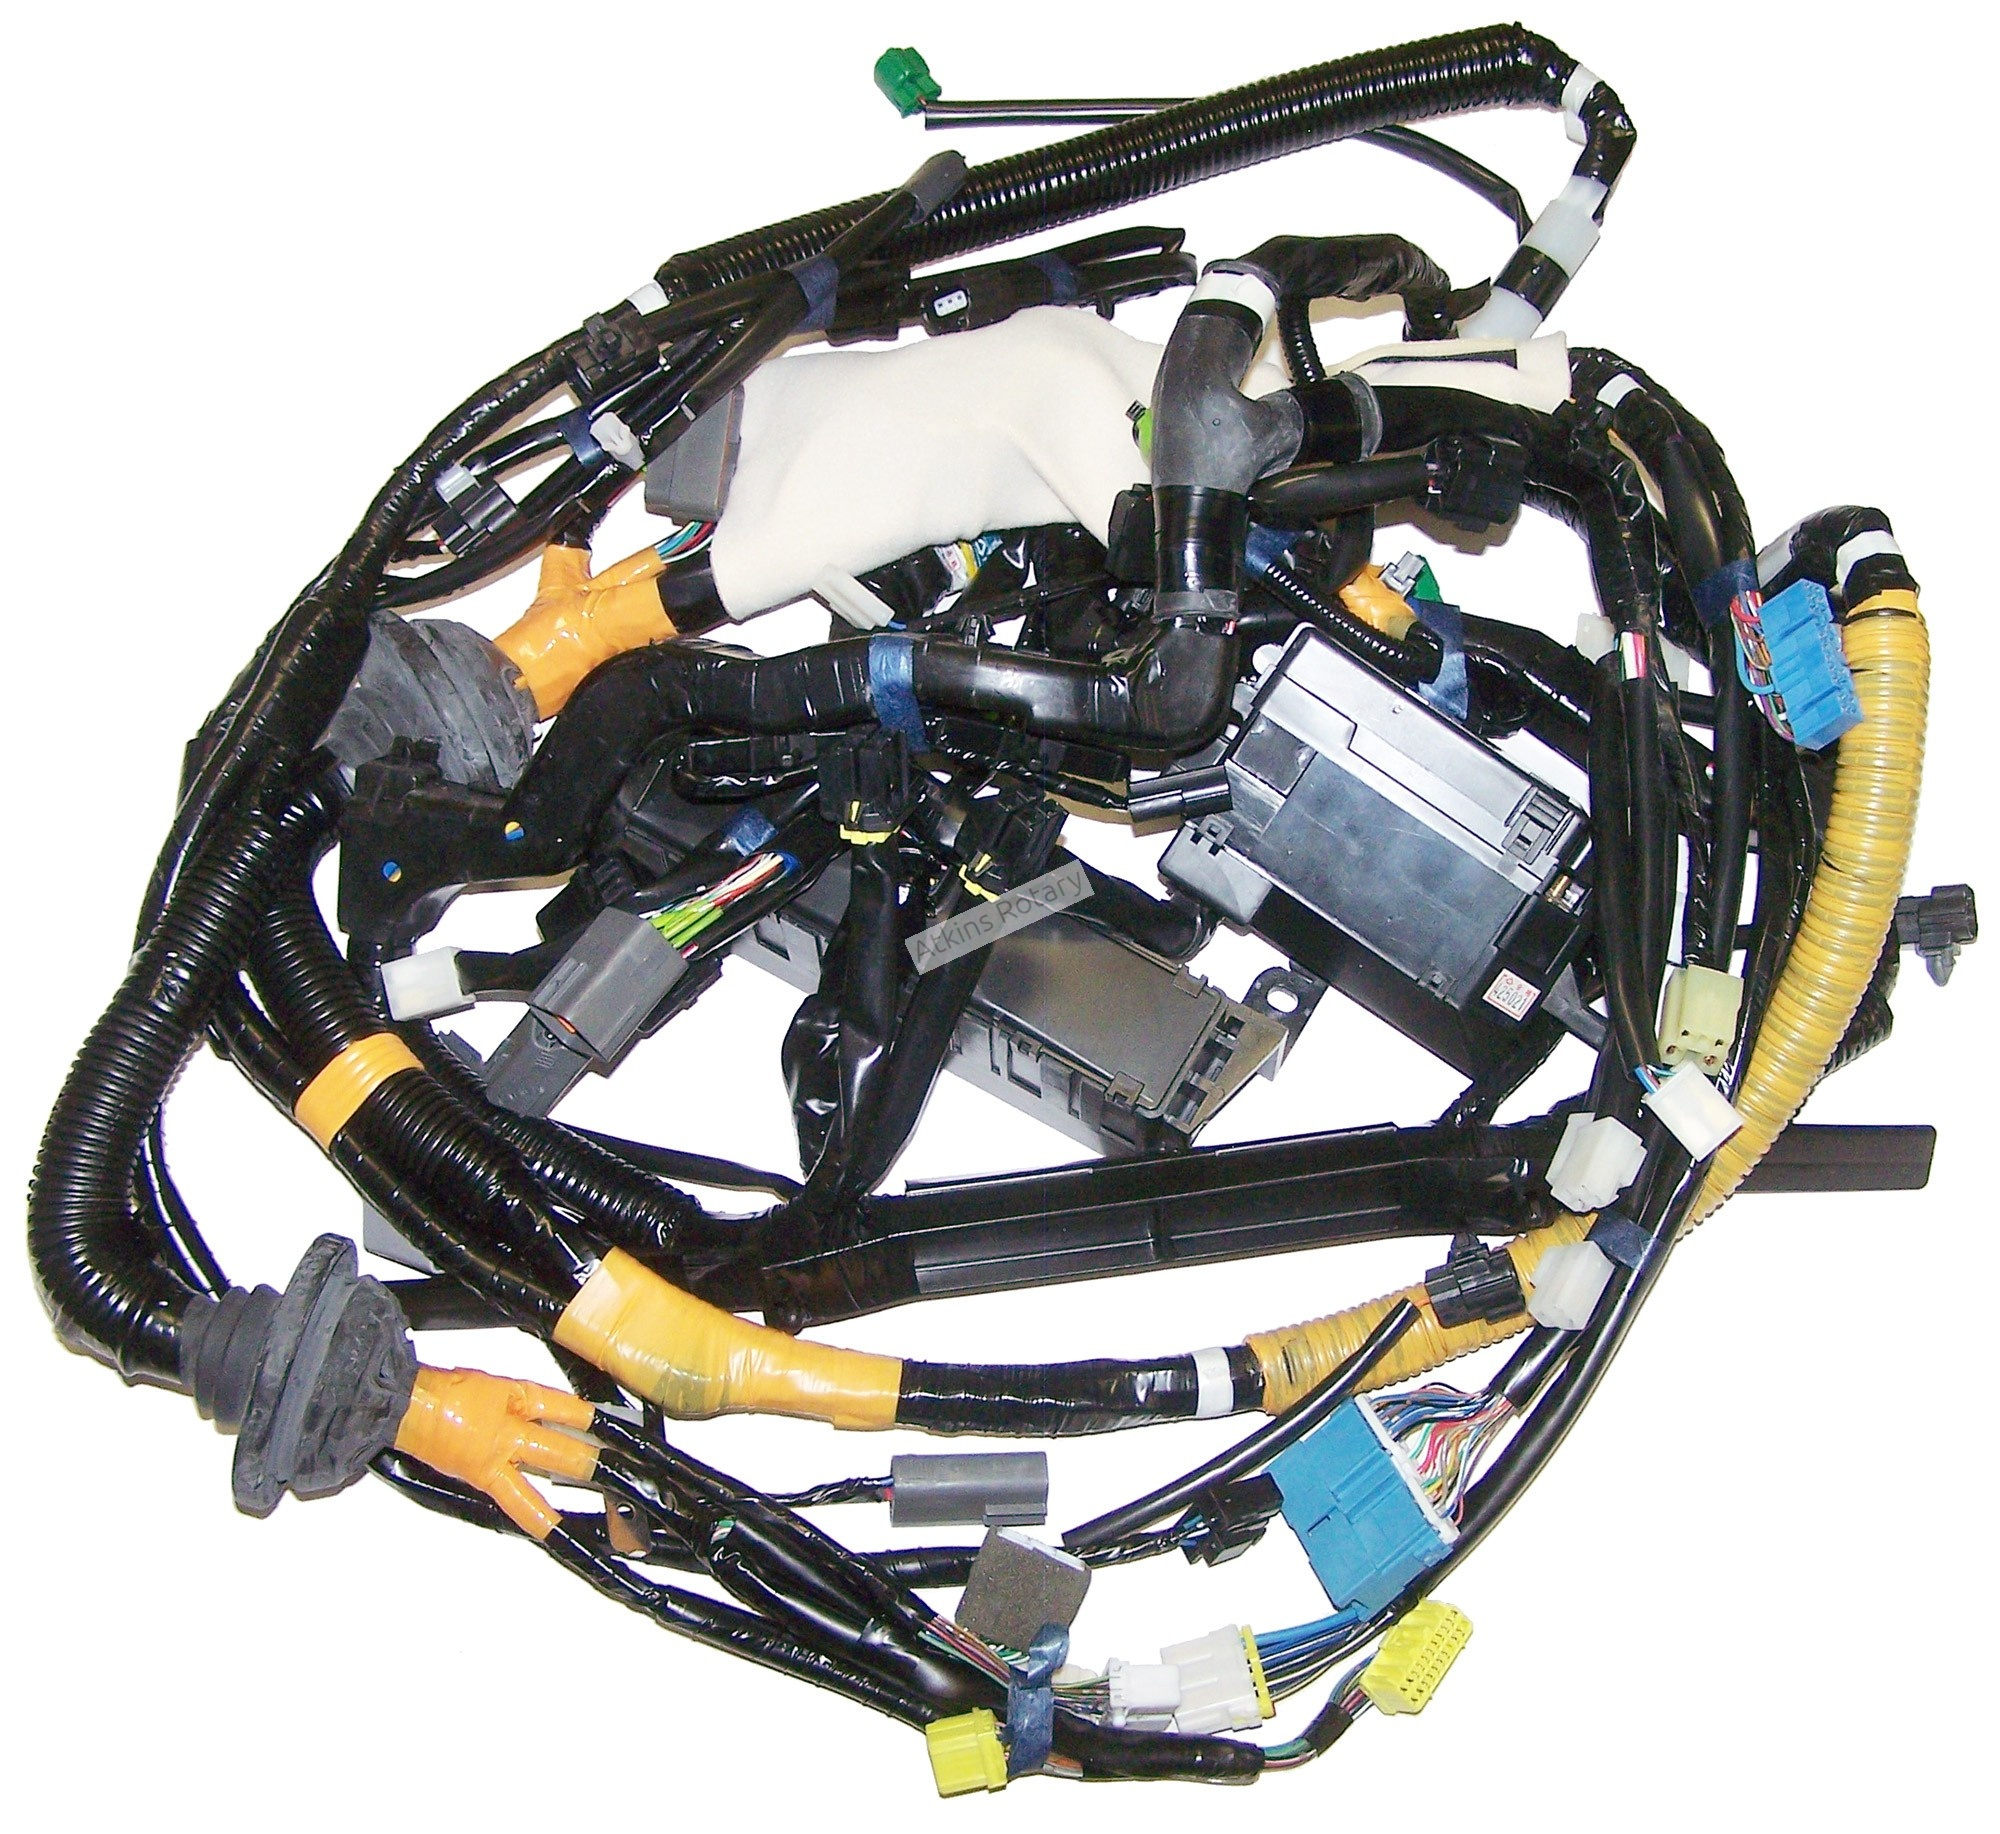 hight resolution of 1993 rx7 front wiring harness fd01 67 010j